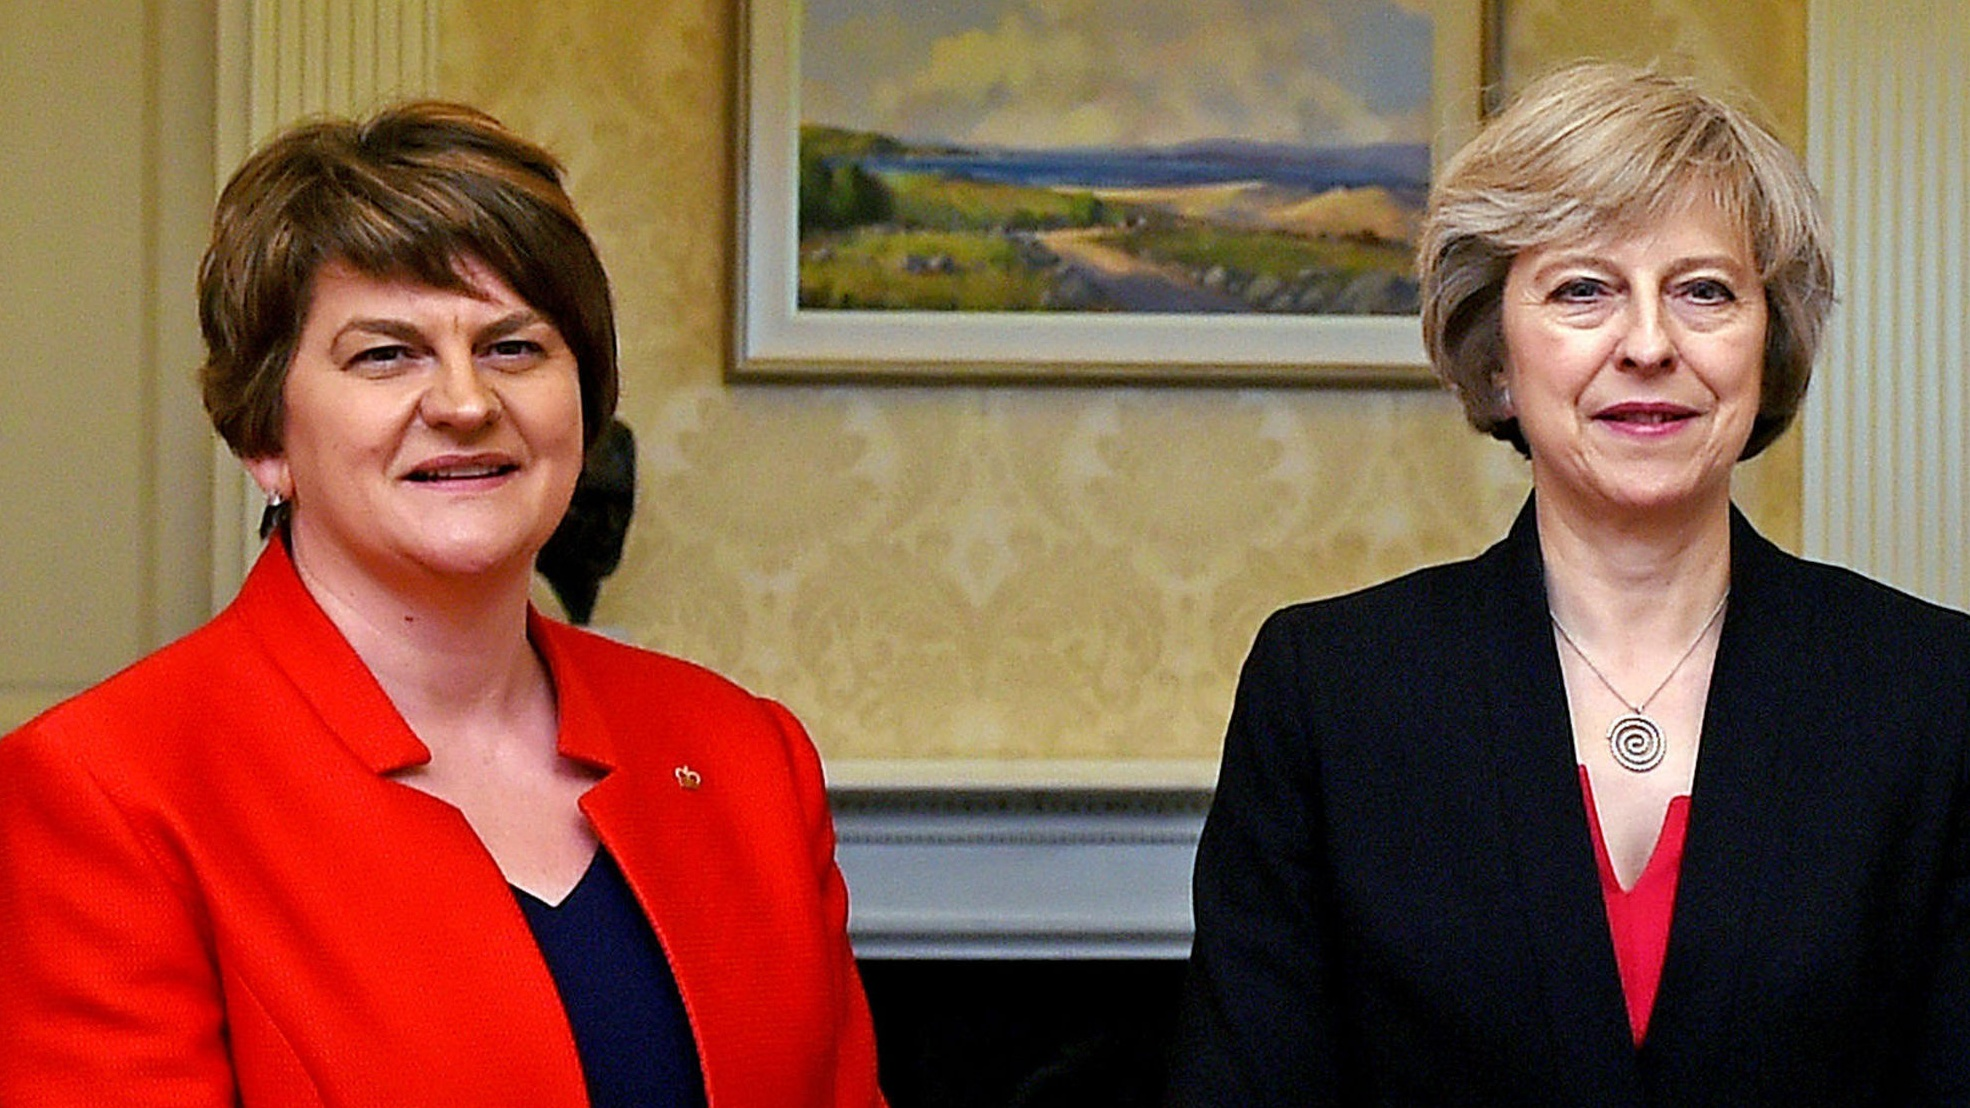 Adams tells Theresa May she's in breach of the Good Friday Agreement